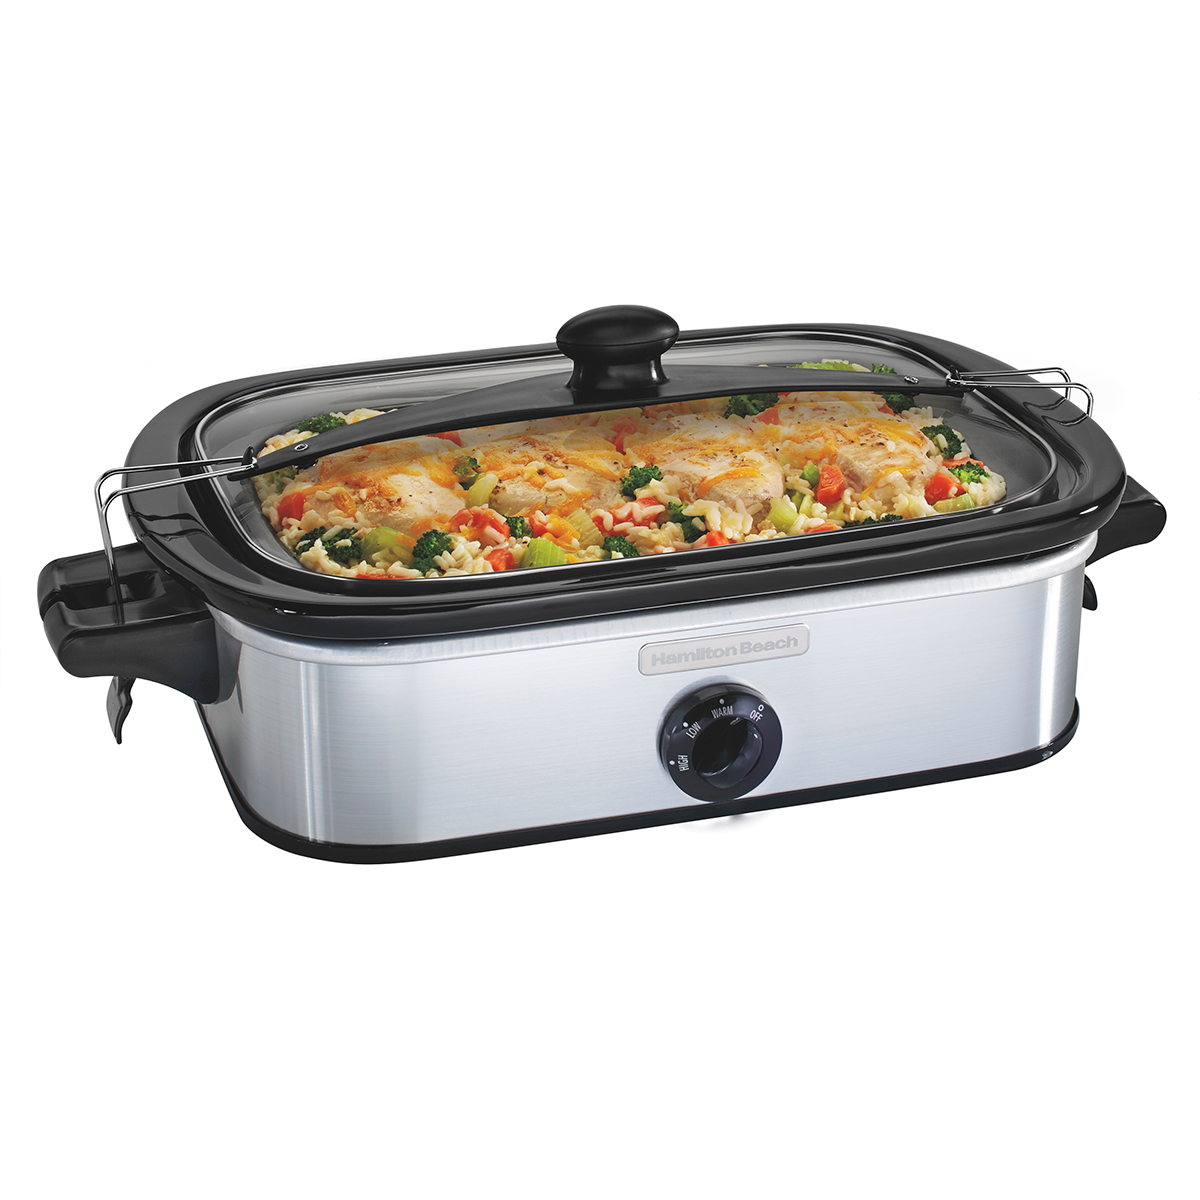 3.5 Quart Casserole Slow Cooker (33444)